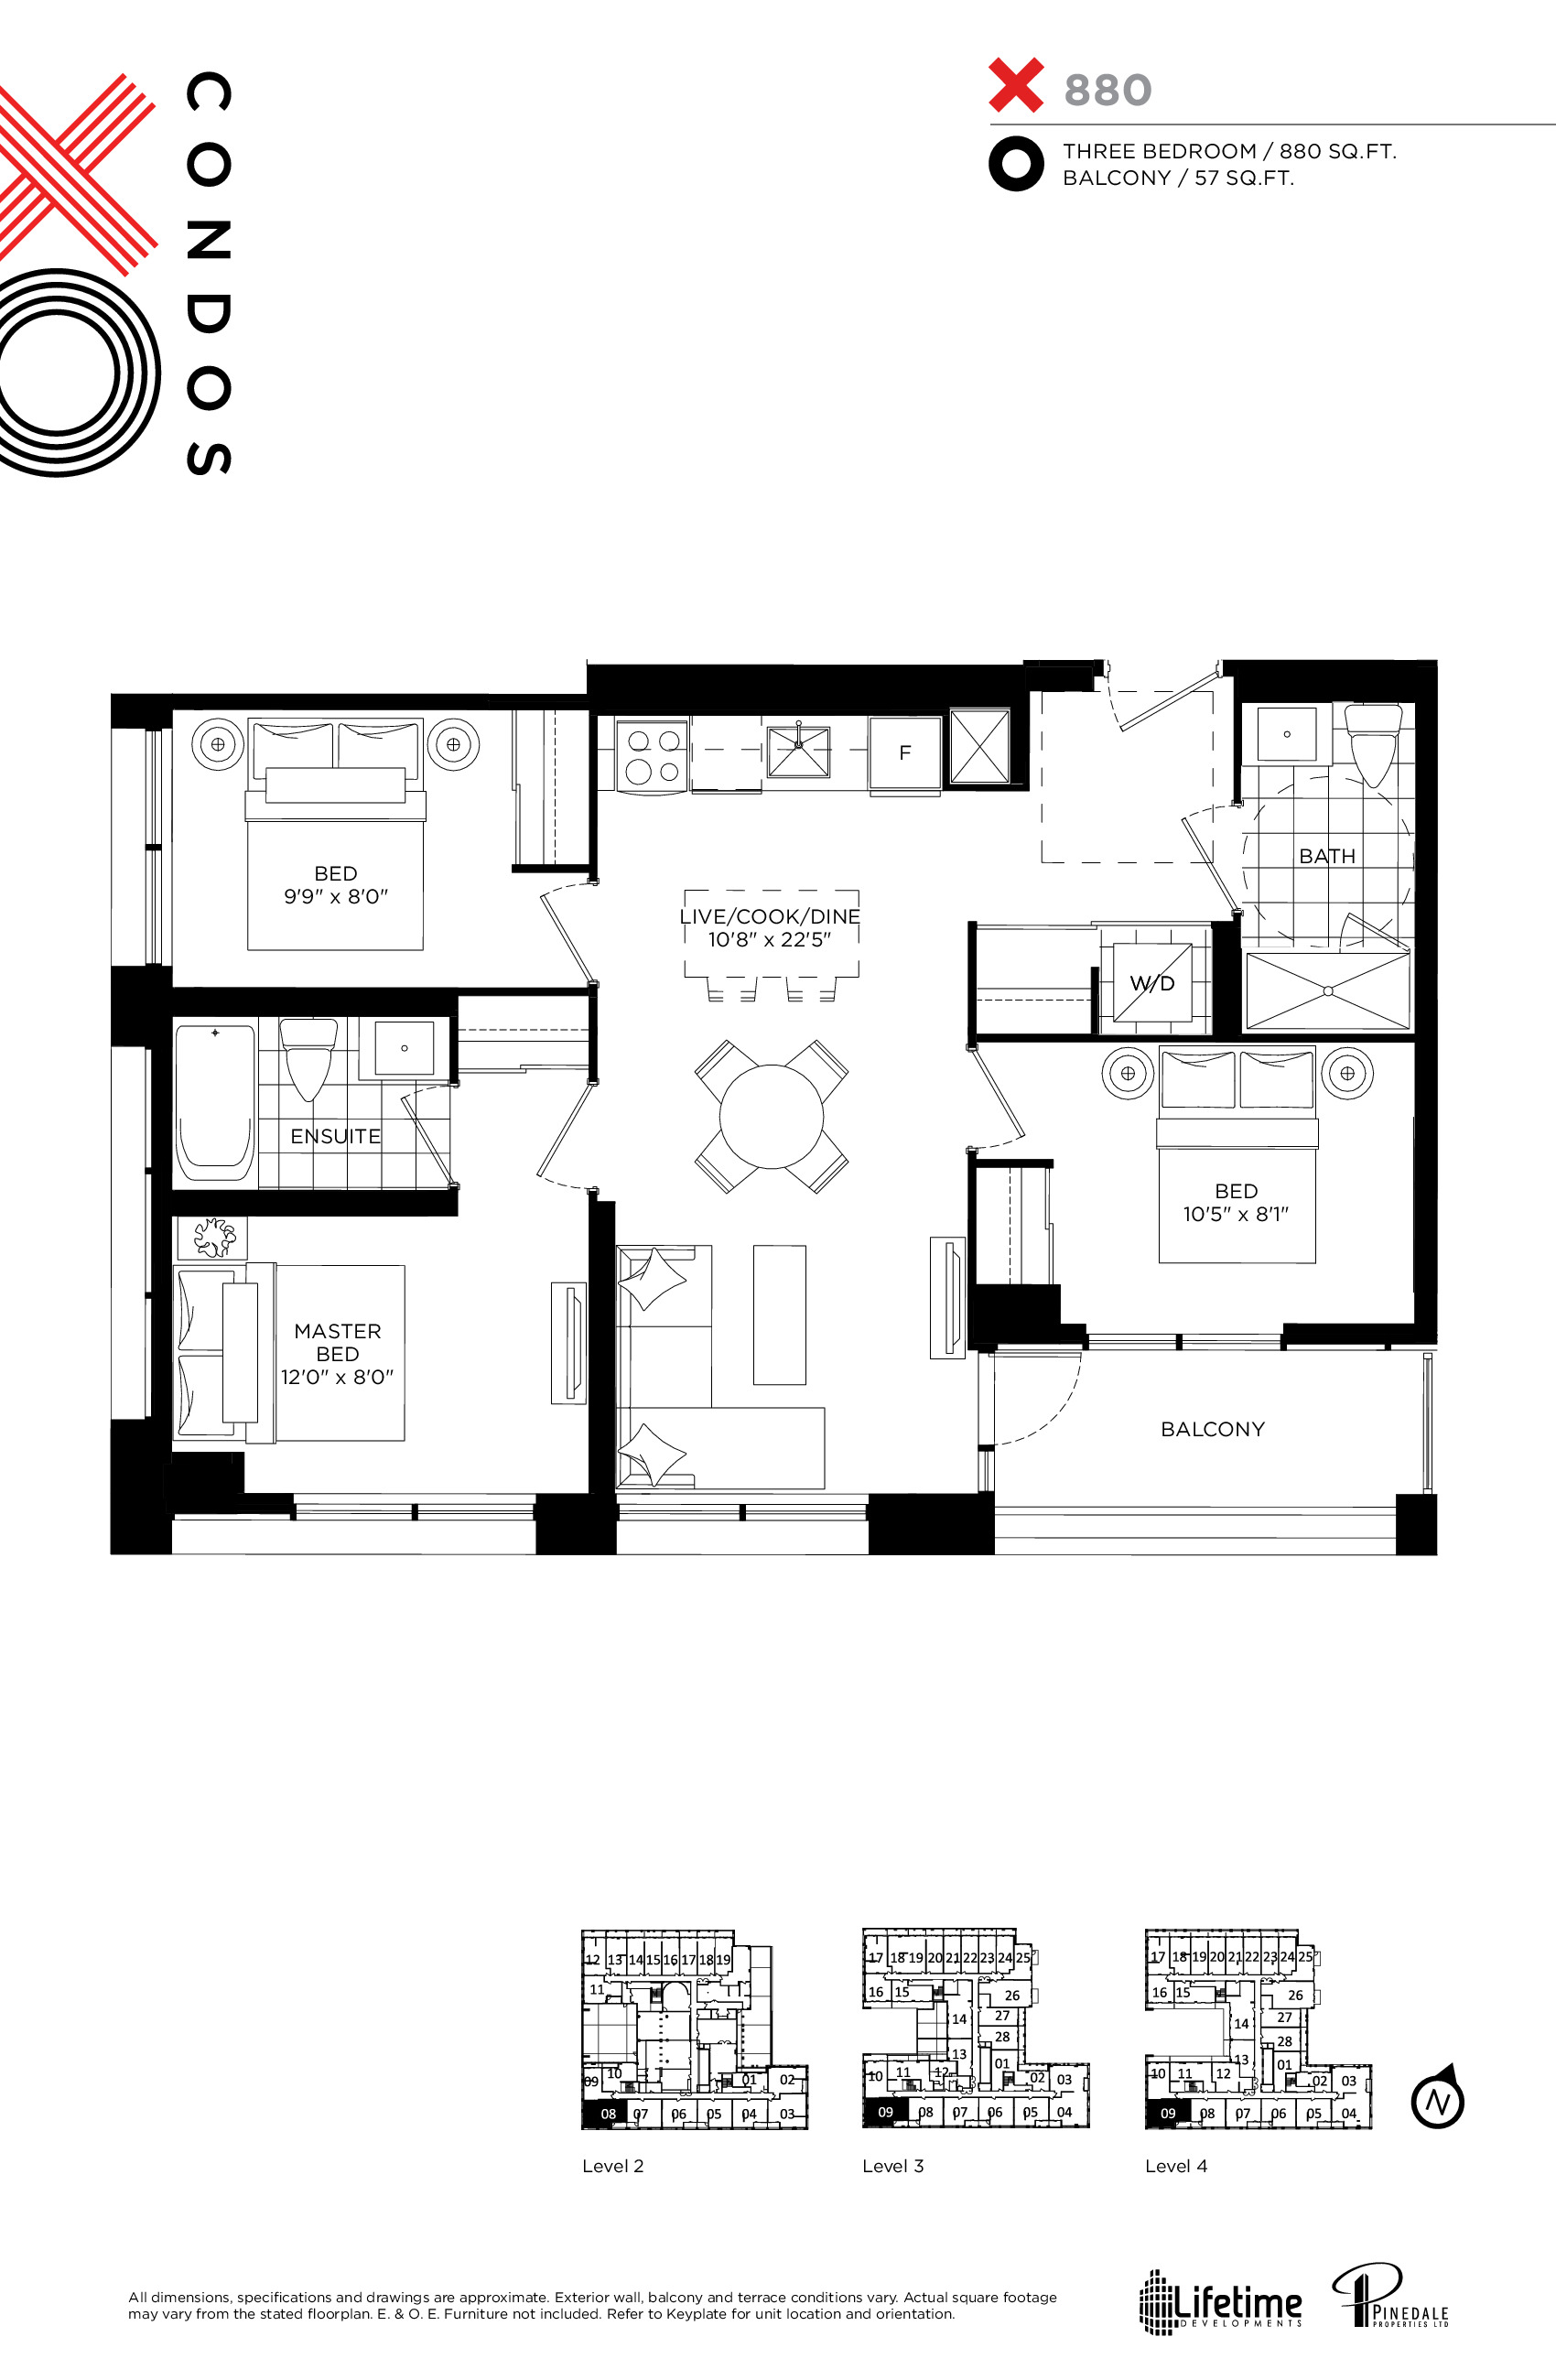 880 Floor Plan at XO Condos - 880 sq.ft